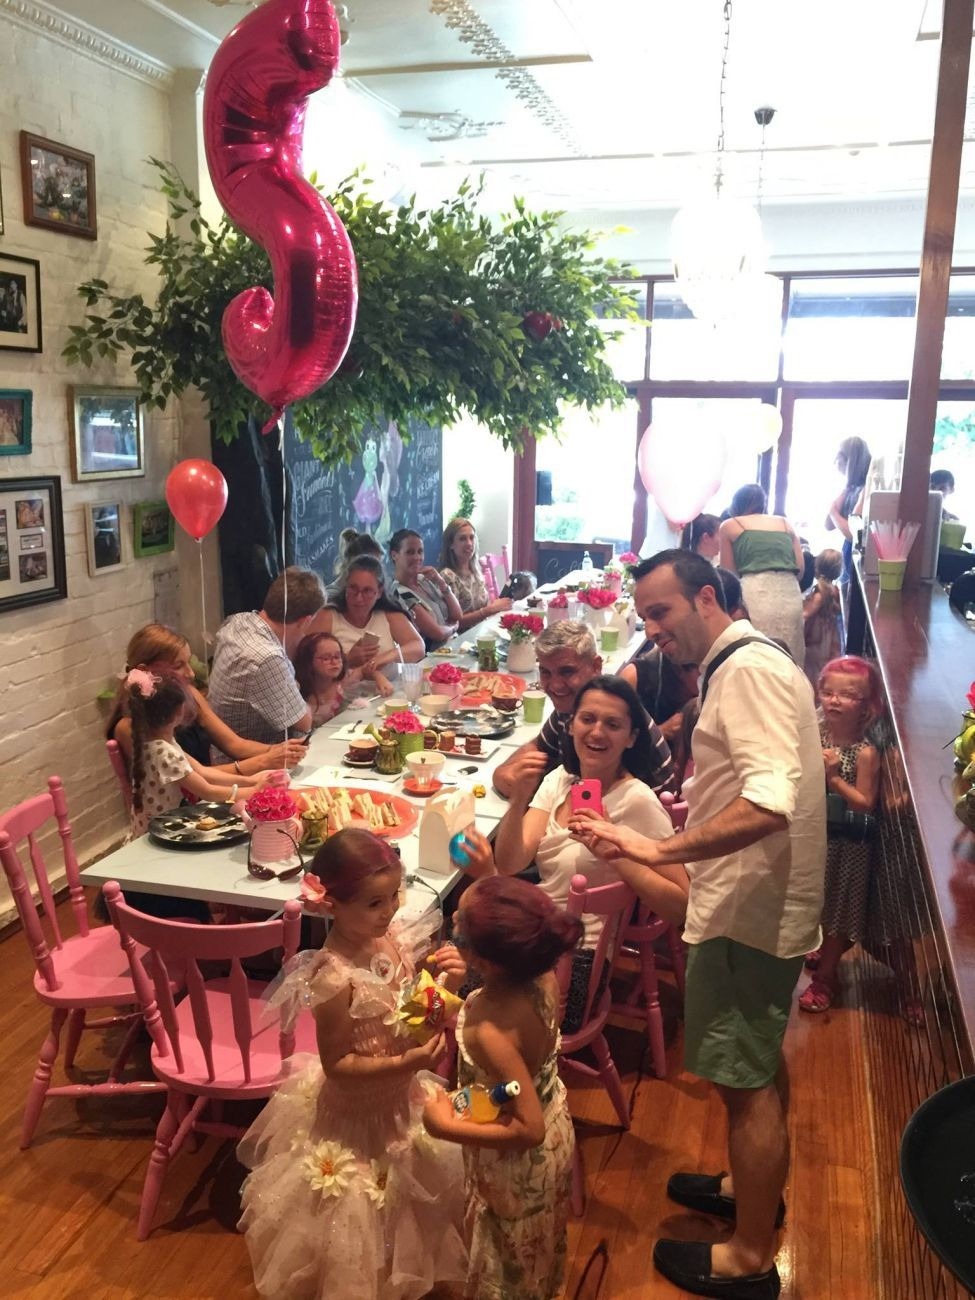 Birthday and Parties | Fairy Wishes - Childrens Parties and Corporate Events